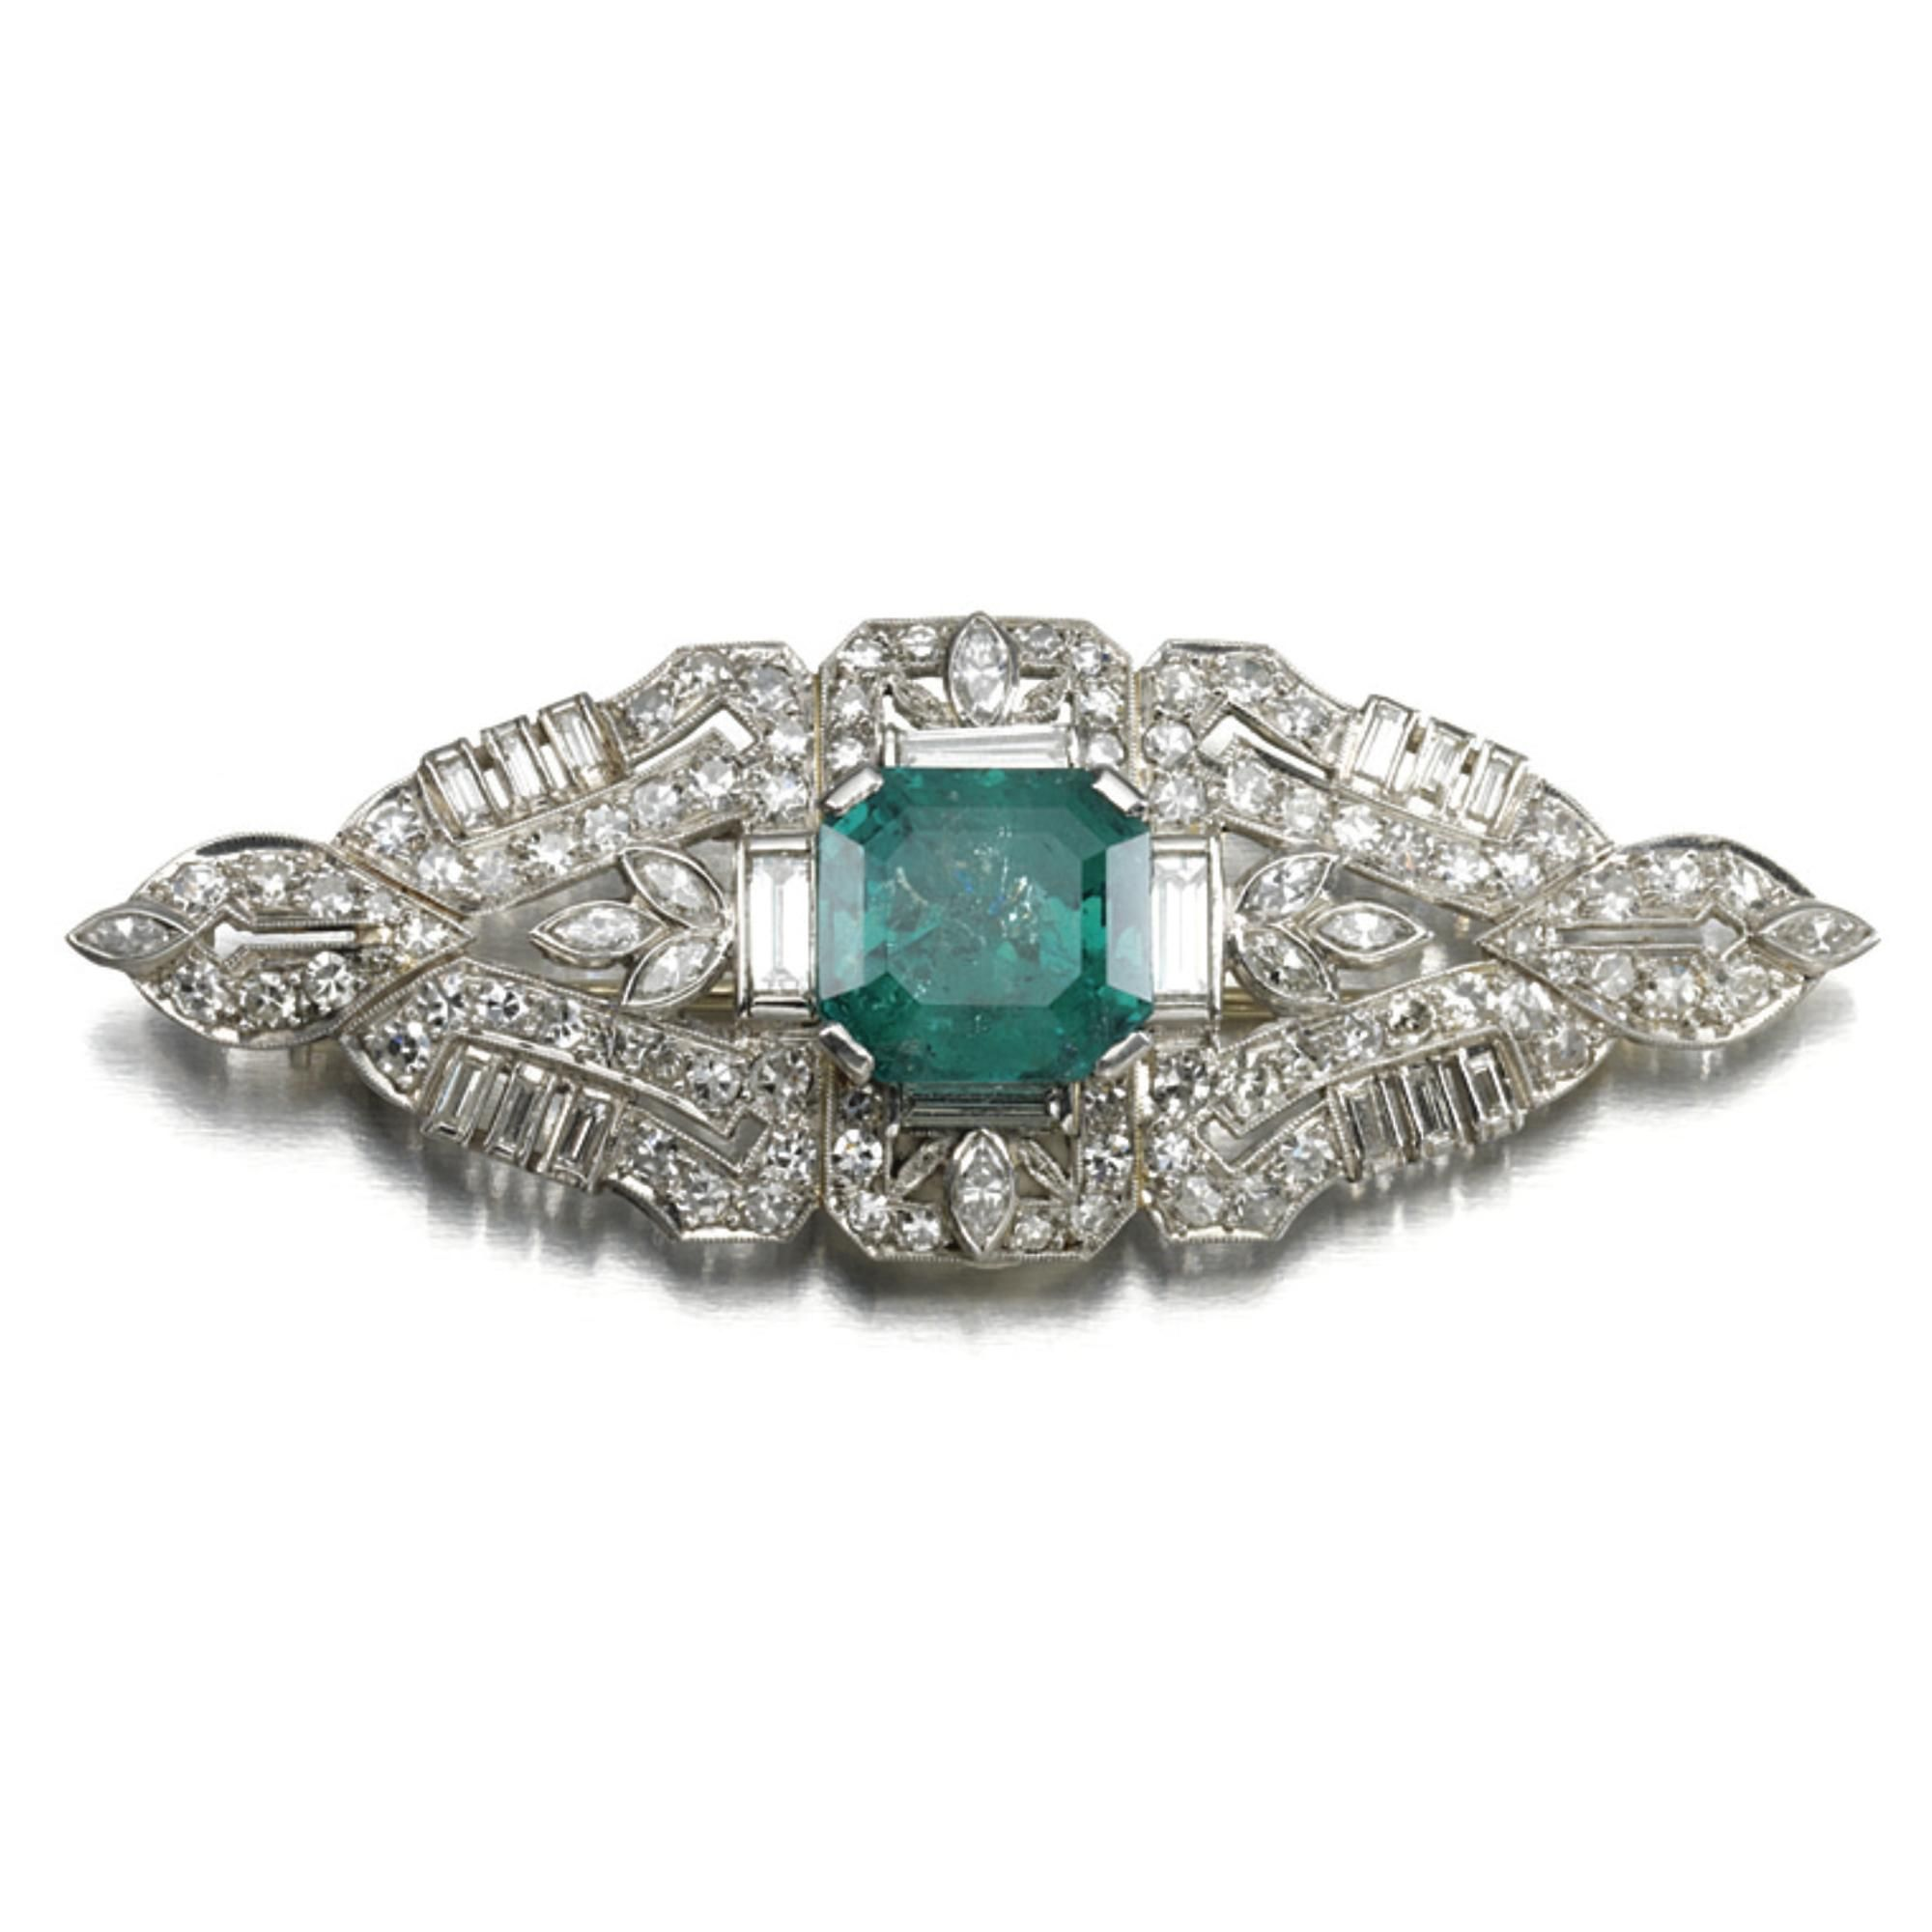 Emerald and diamond brooch, circa 1940. Set at the centre with an octagonal step-cut emerald within an open work floral motif set with single-cut, marquise-shaped and baguette diamonds, mounted in platinum.